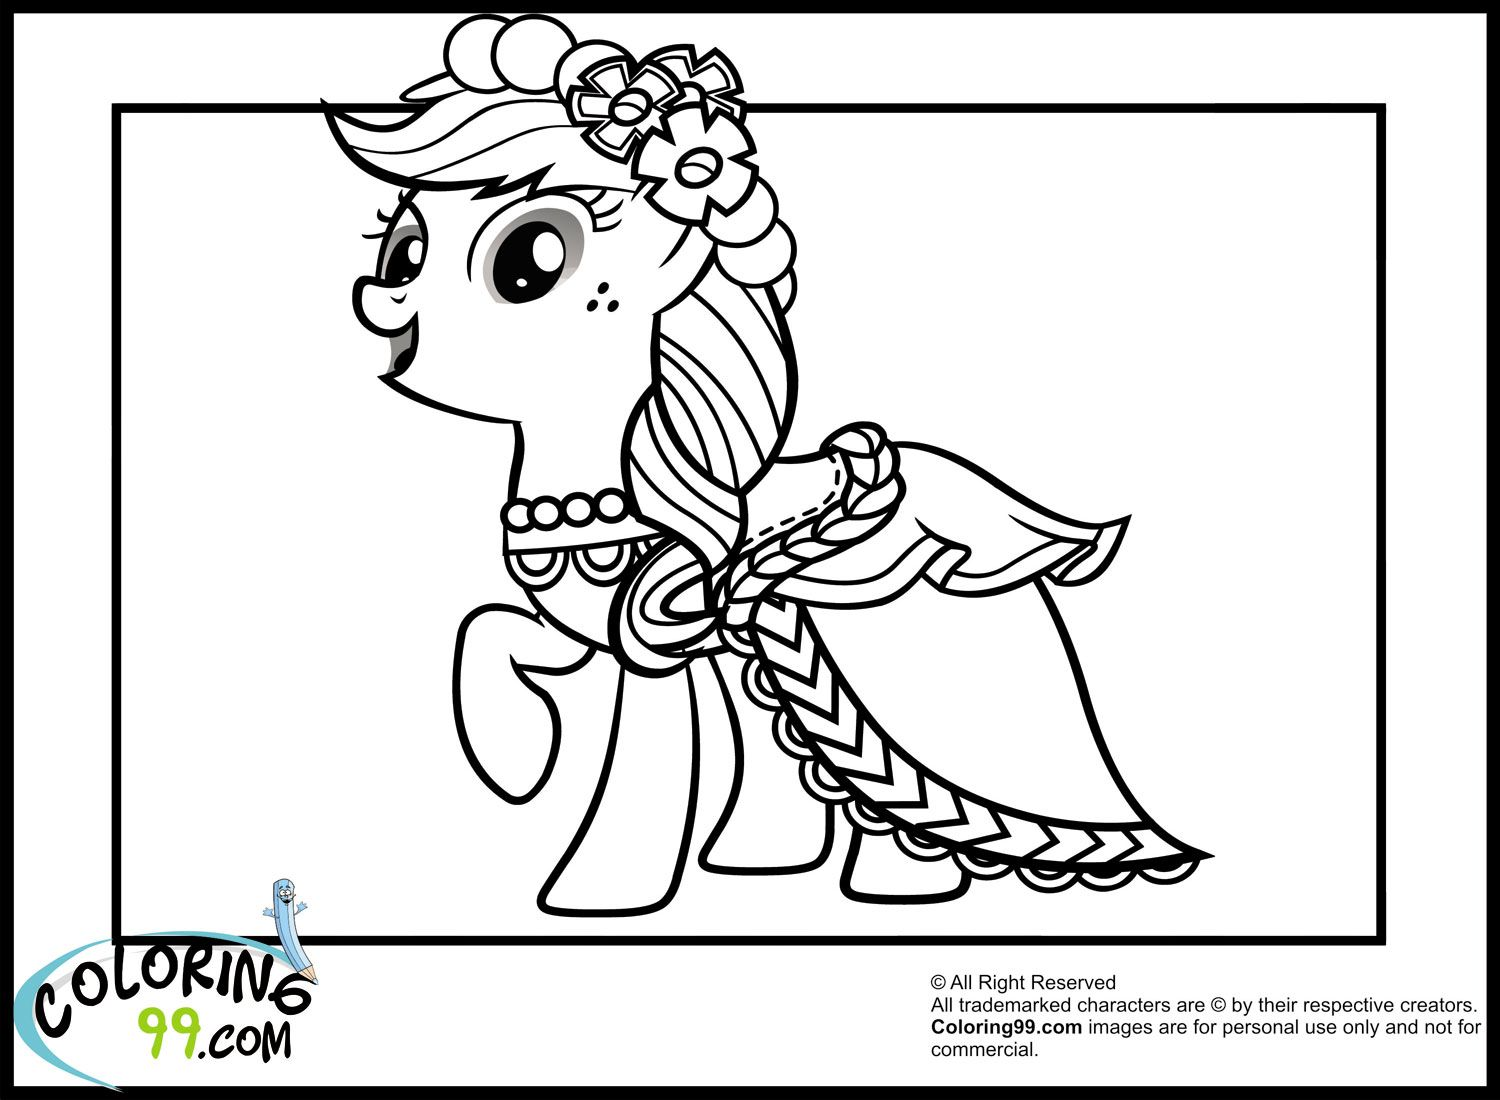 my little pony applejack coloring pages team colors - Applejack Coloring Pages